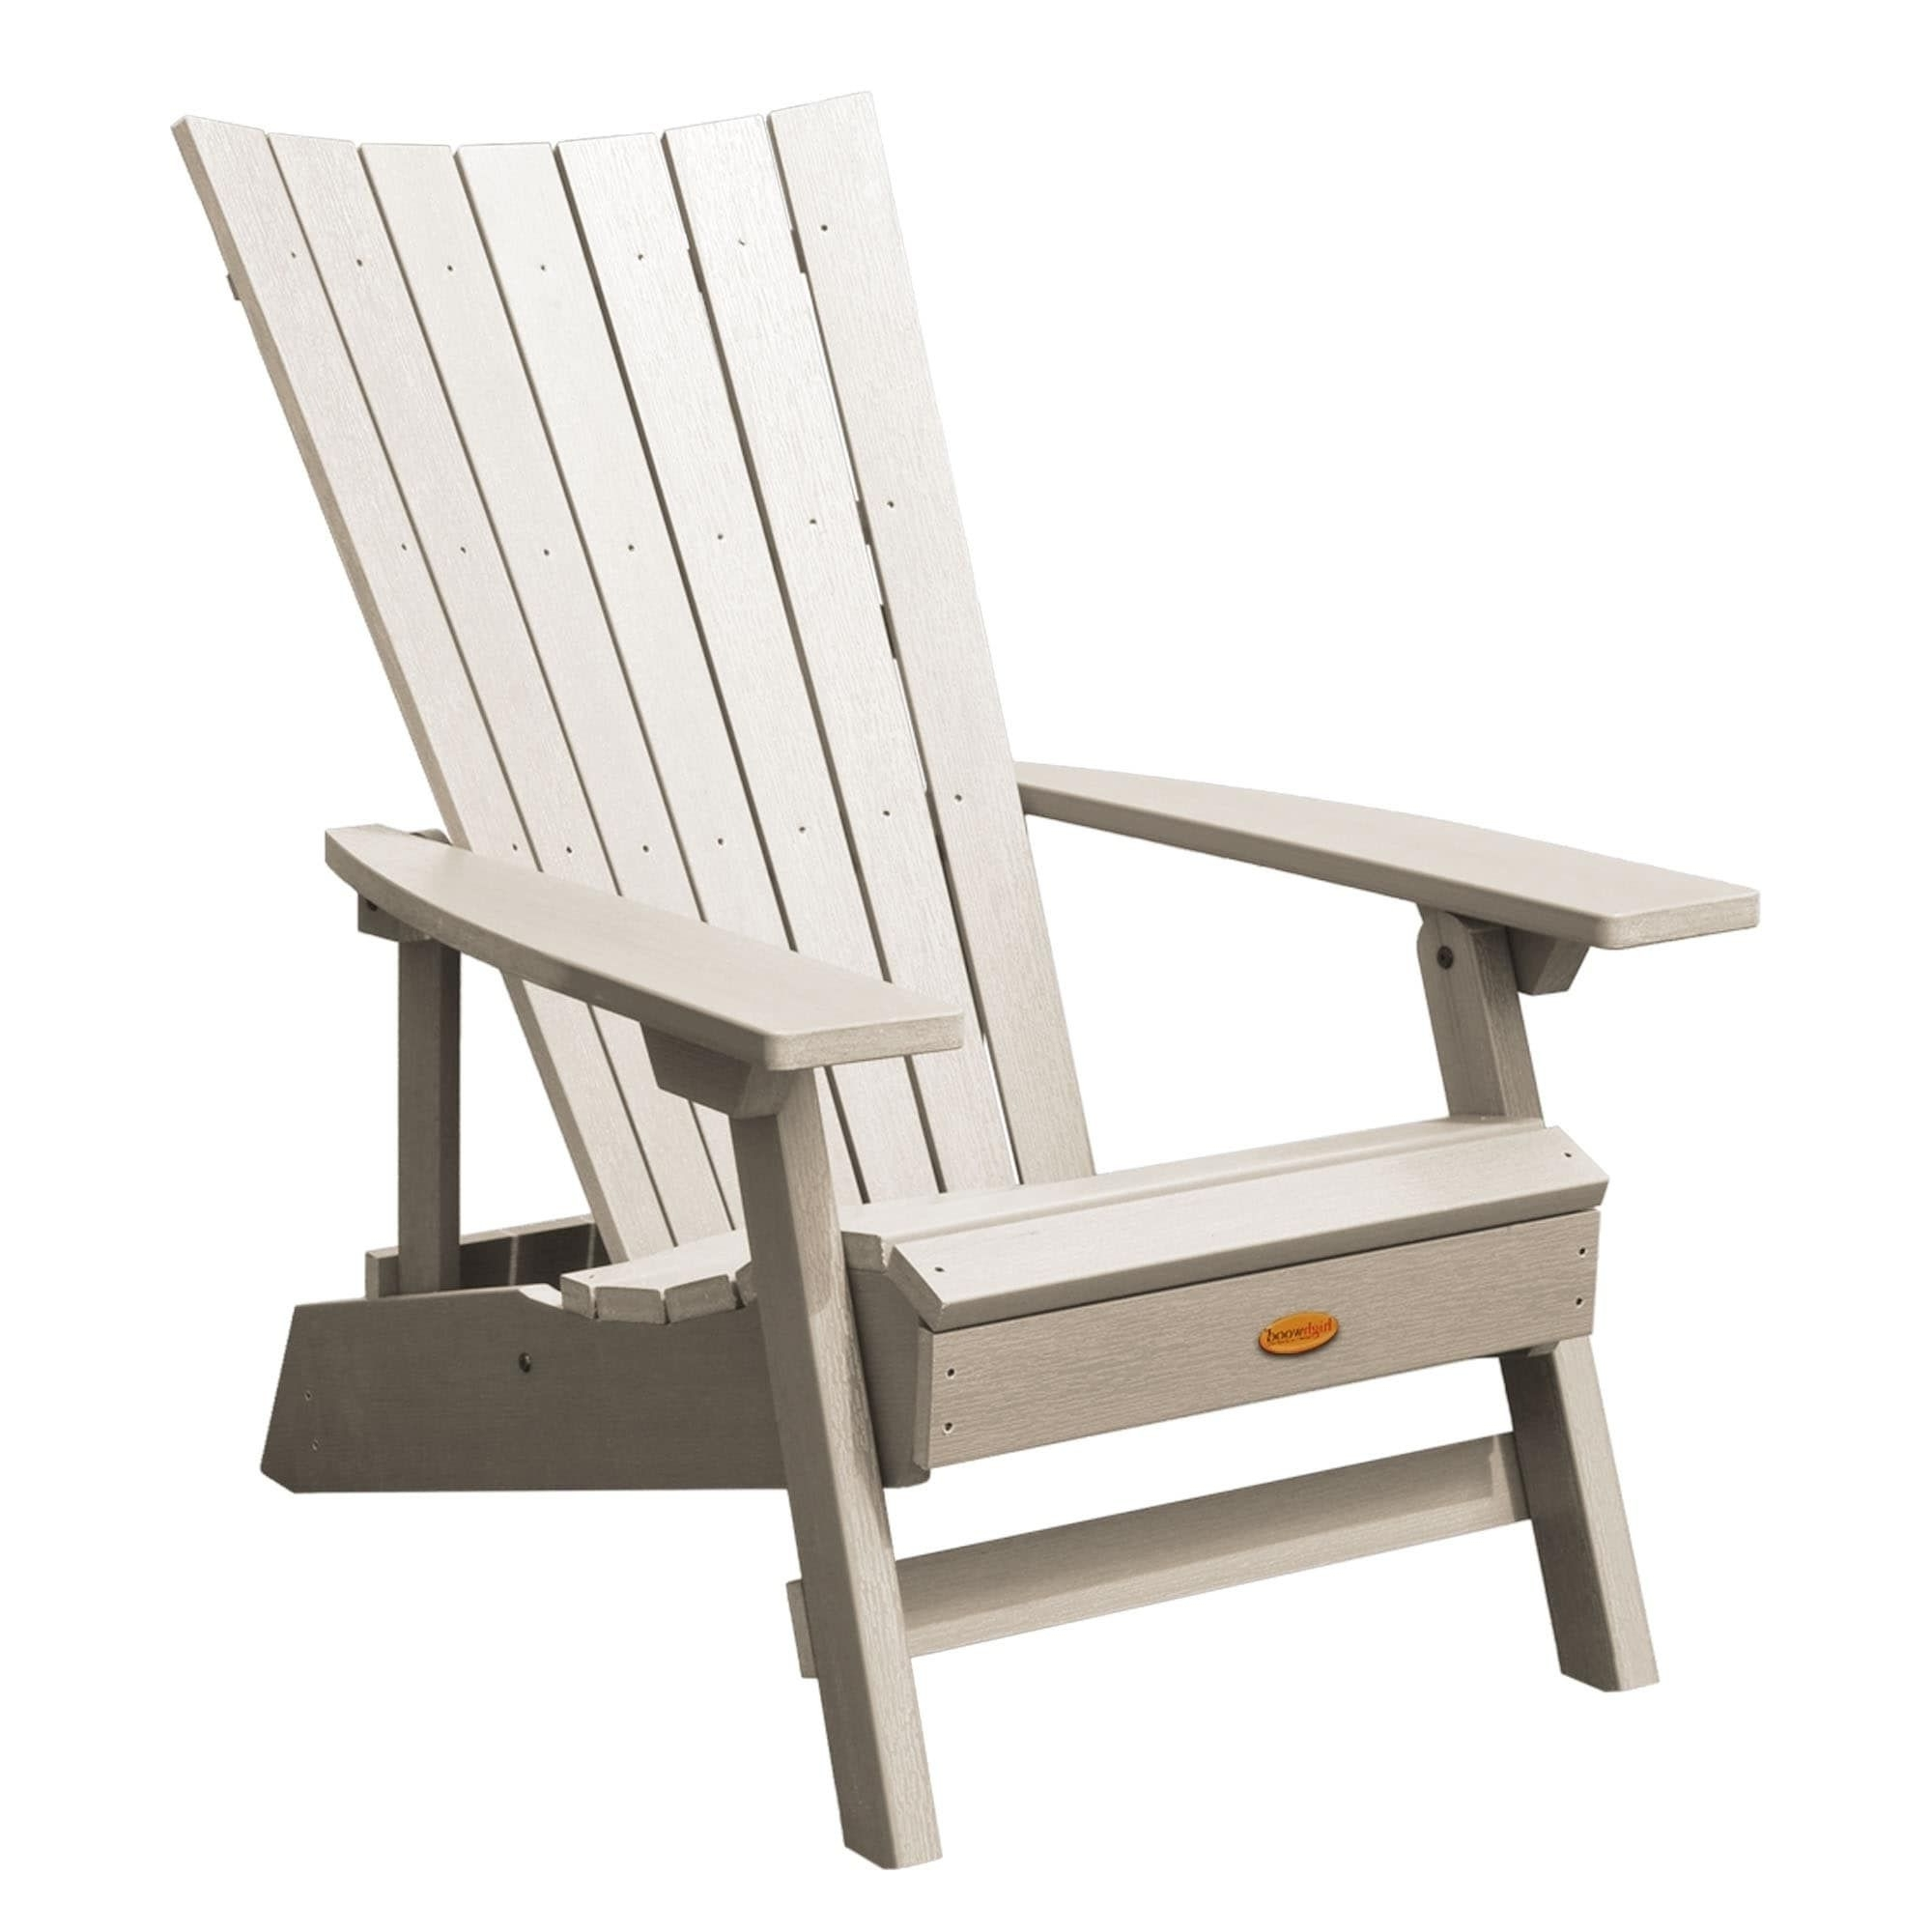 Preferred Manhattan Patio Grey Rocking Chairs Intended For Highwood Manhattan Beach Adirondack Chair (Black), Size Single (View 14 of 20)